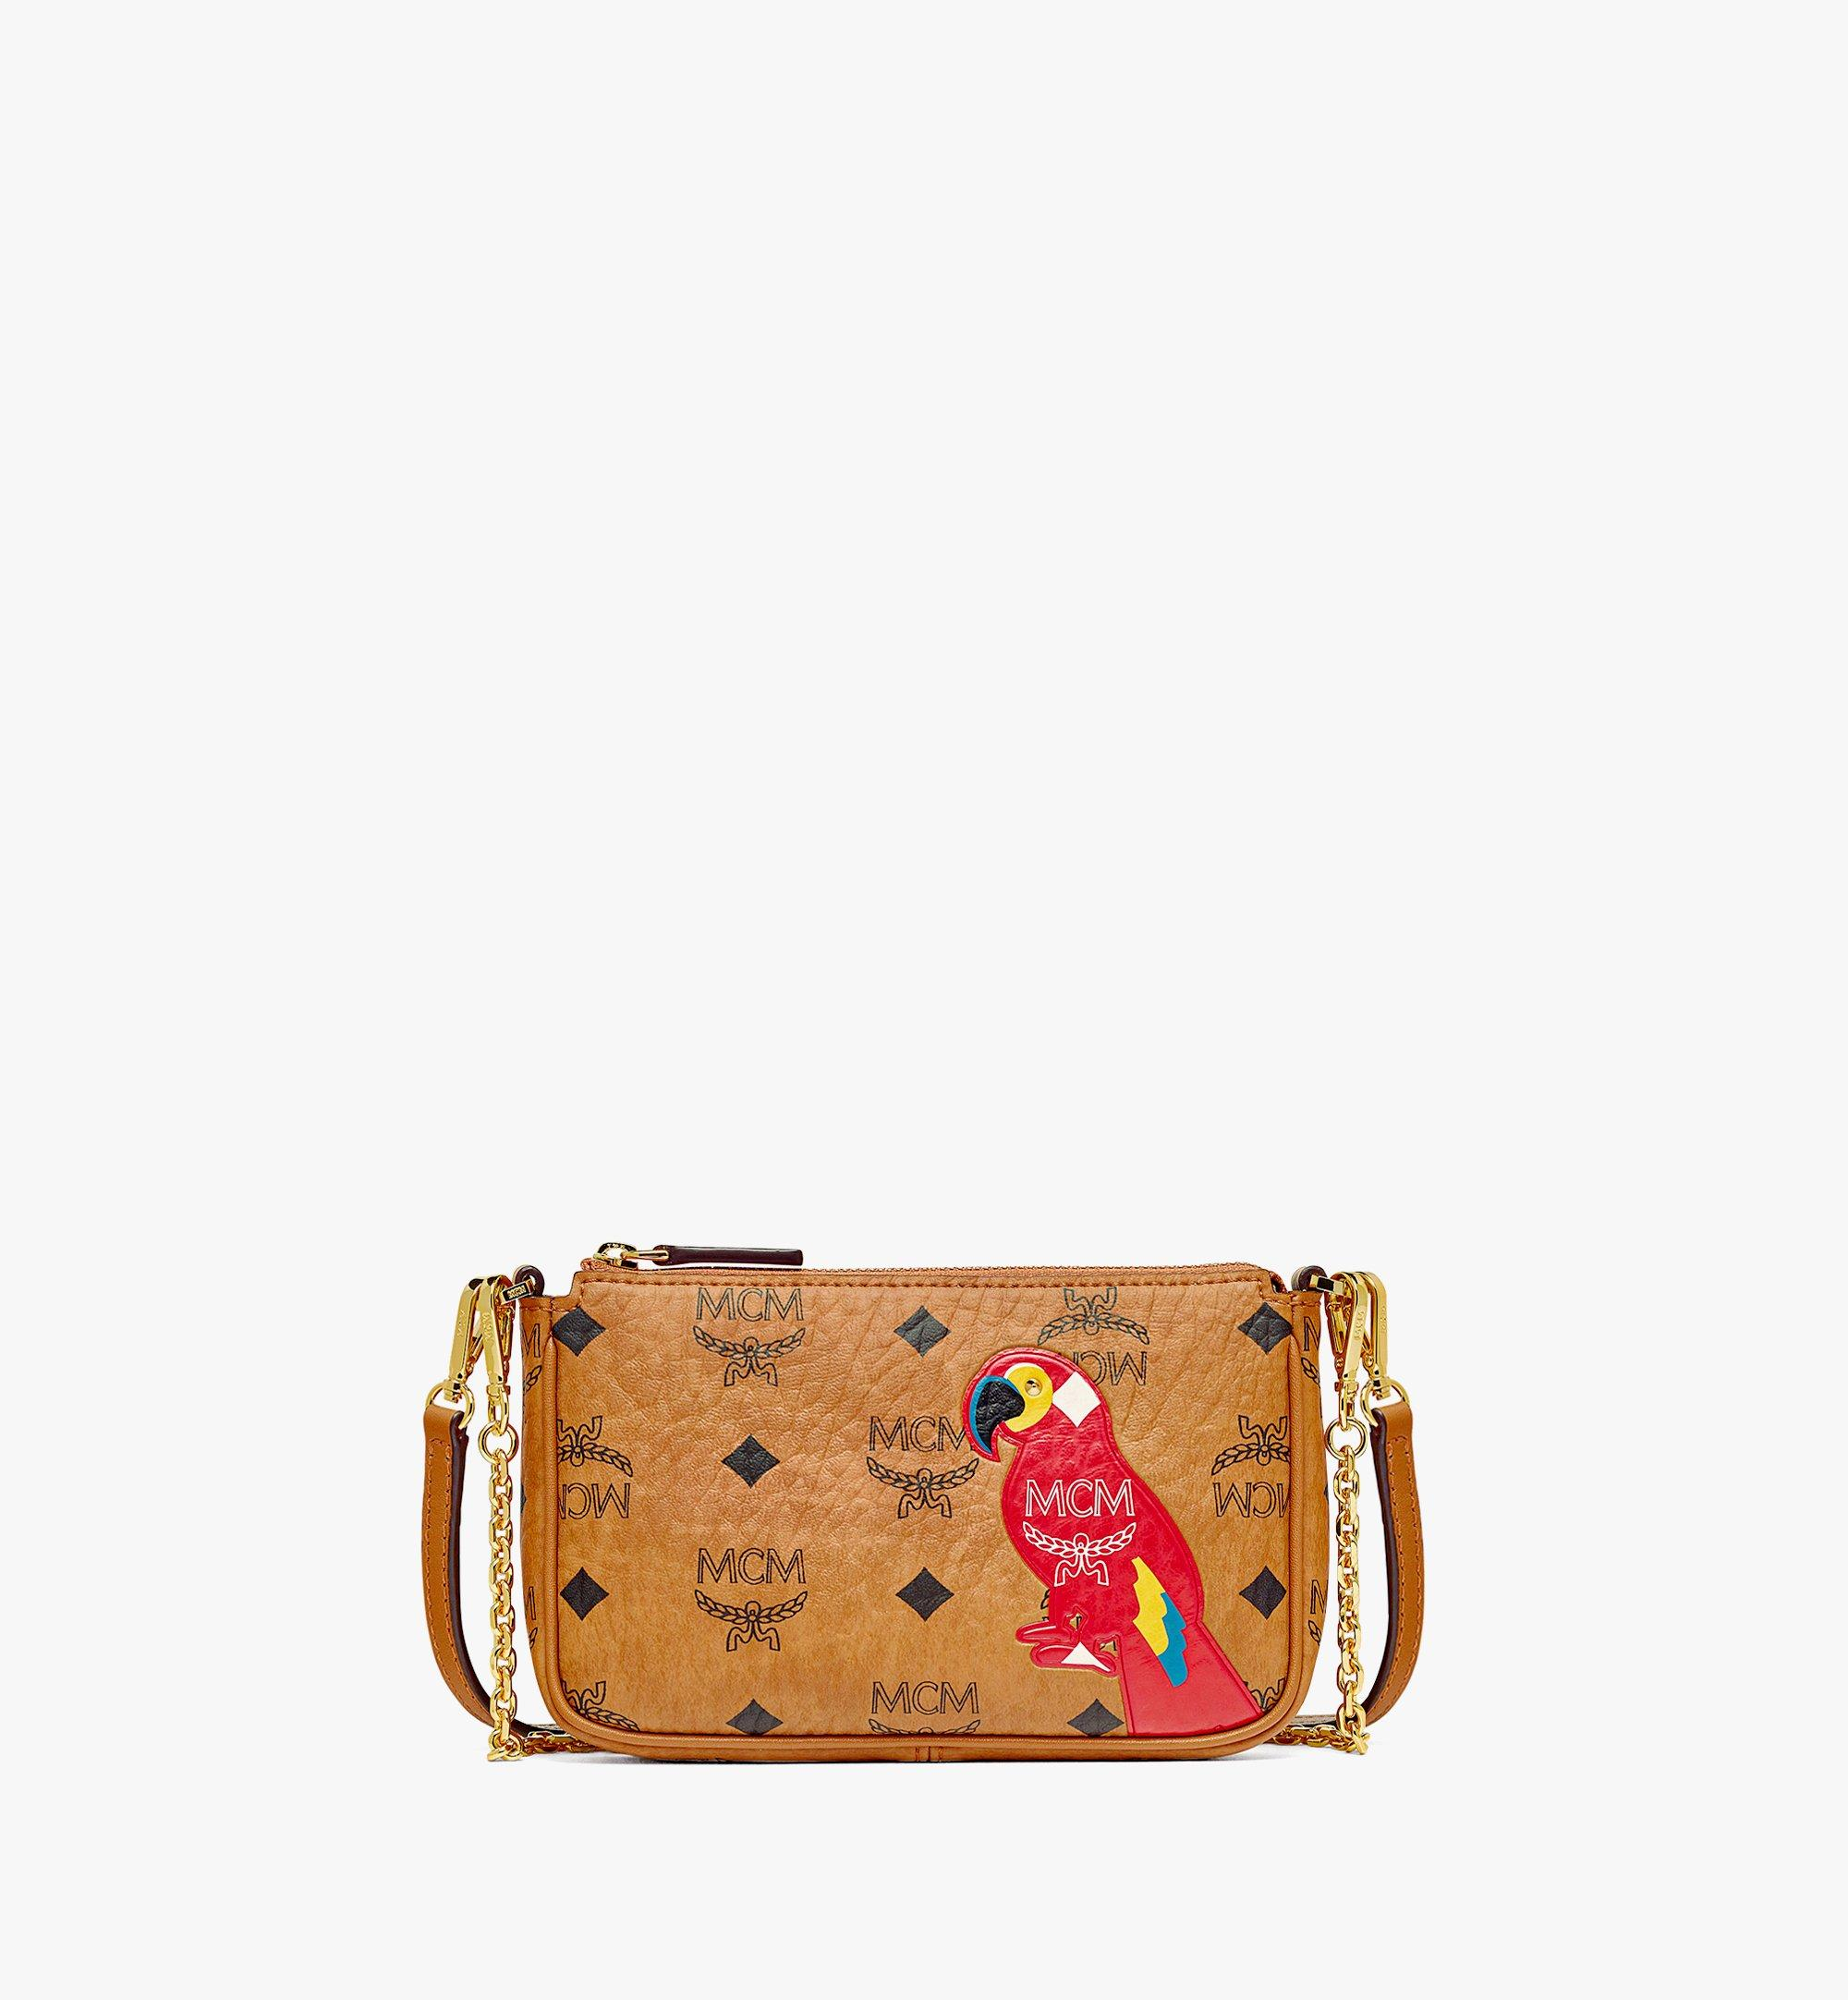 MCM MCM Zoo Parrot Crossbody Pouch in Visetos Cognac MYZBSXL02CO001 Alternate View 1